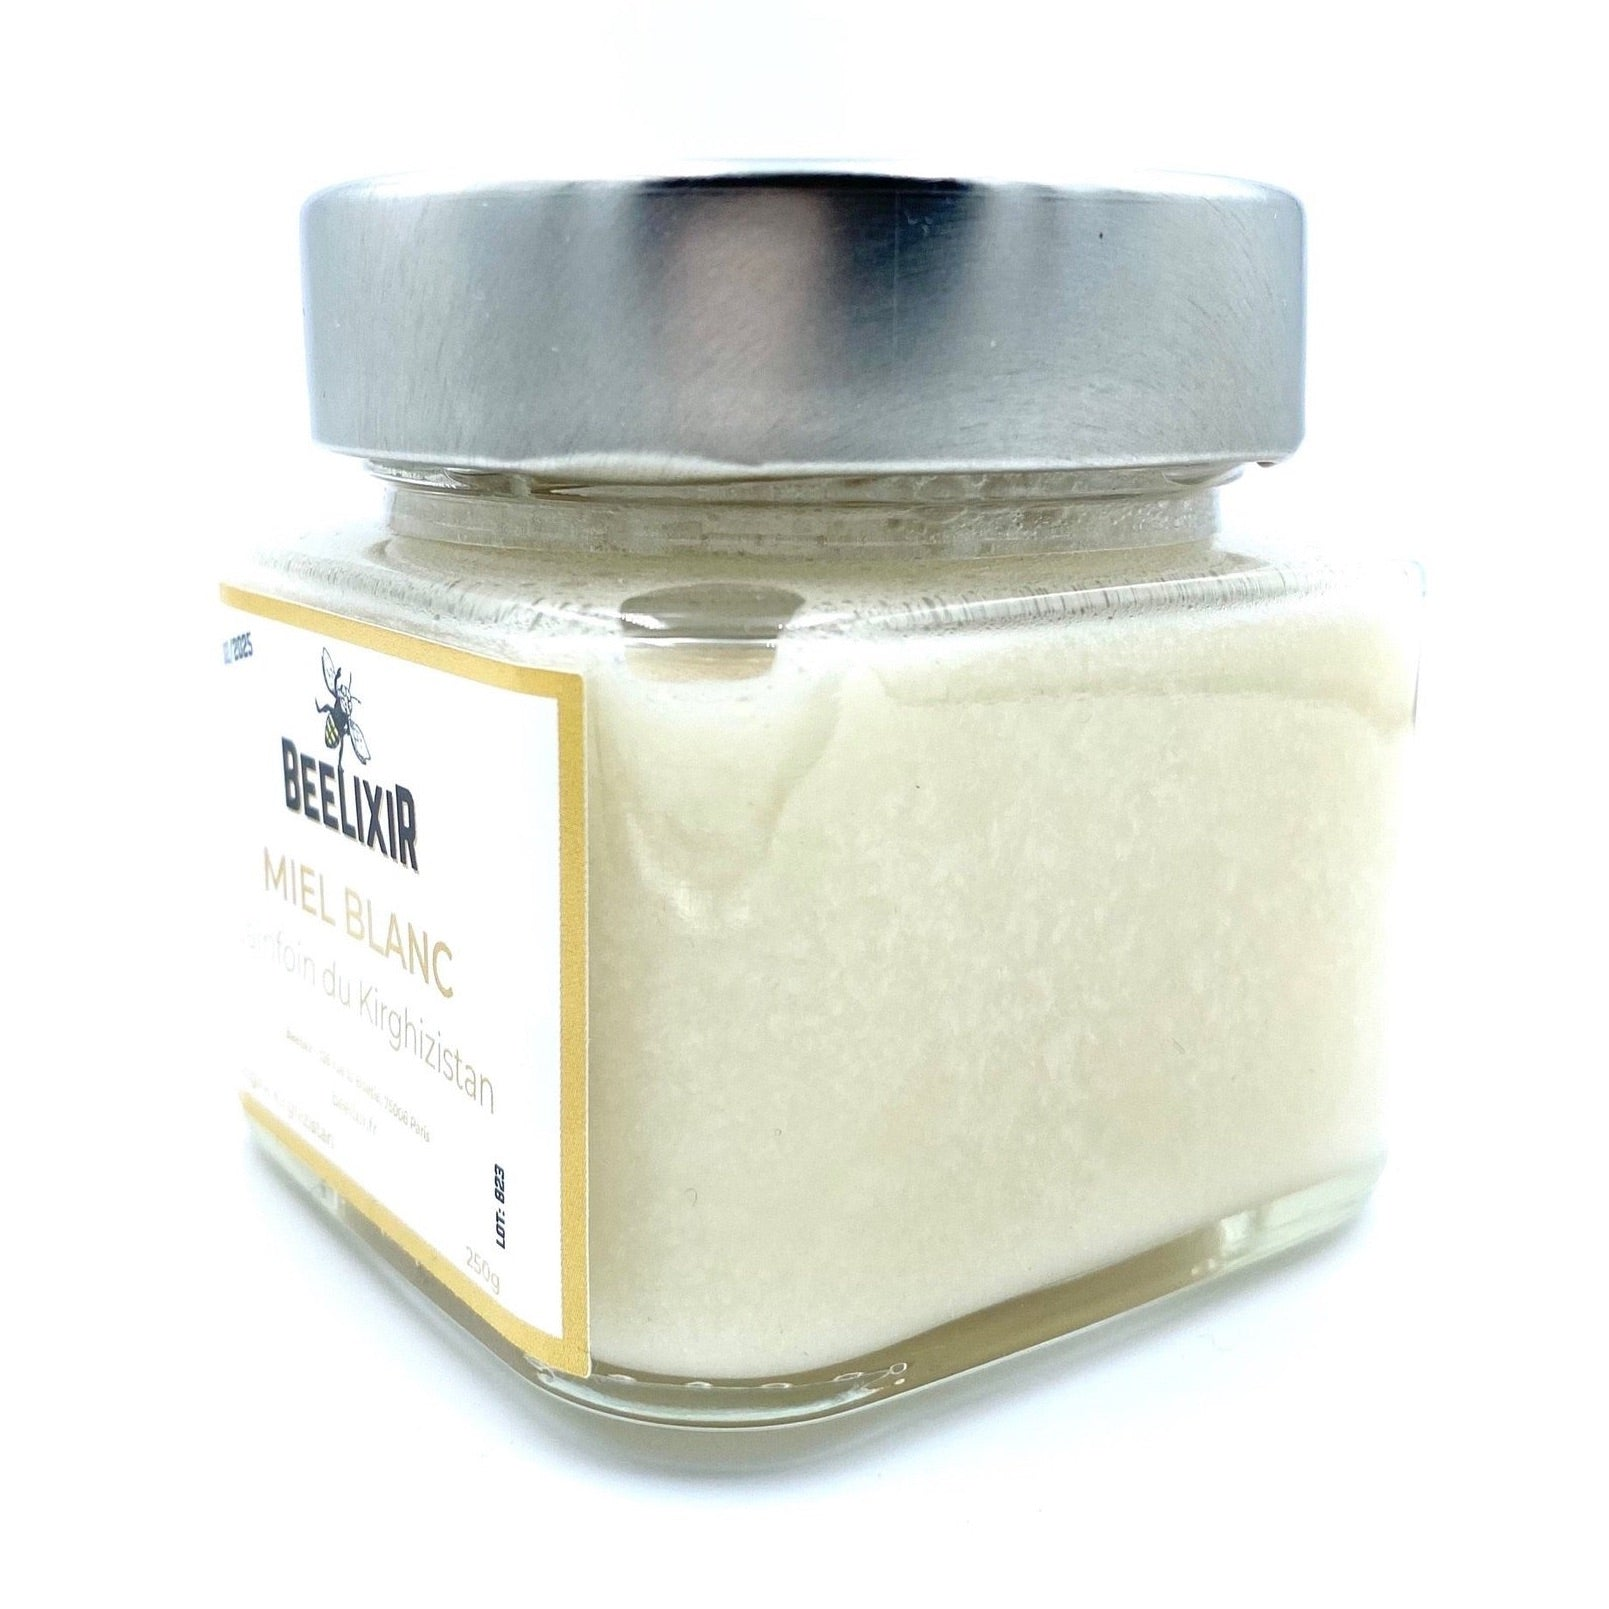 White Honey from Kyrgyzstan - Sainfoin honey 250g - Beelixir Rare Honey Mad Honey